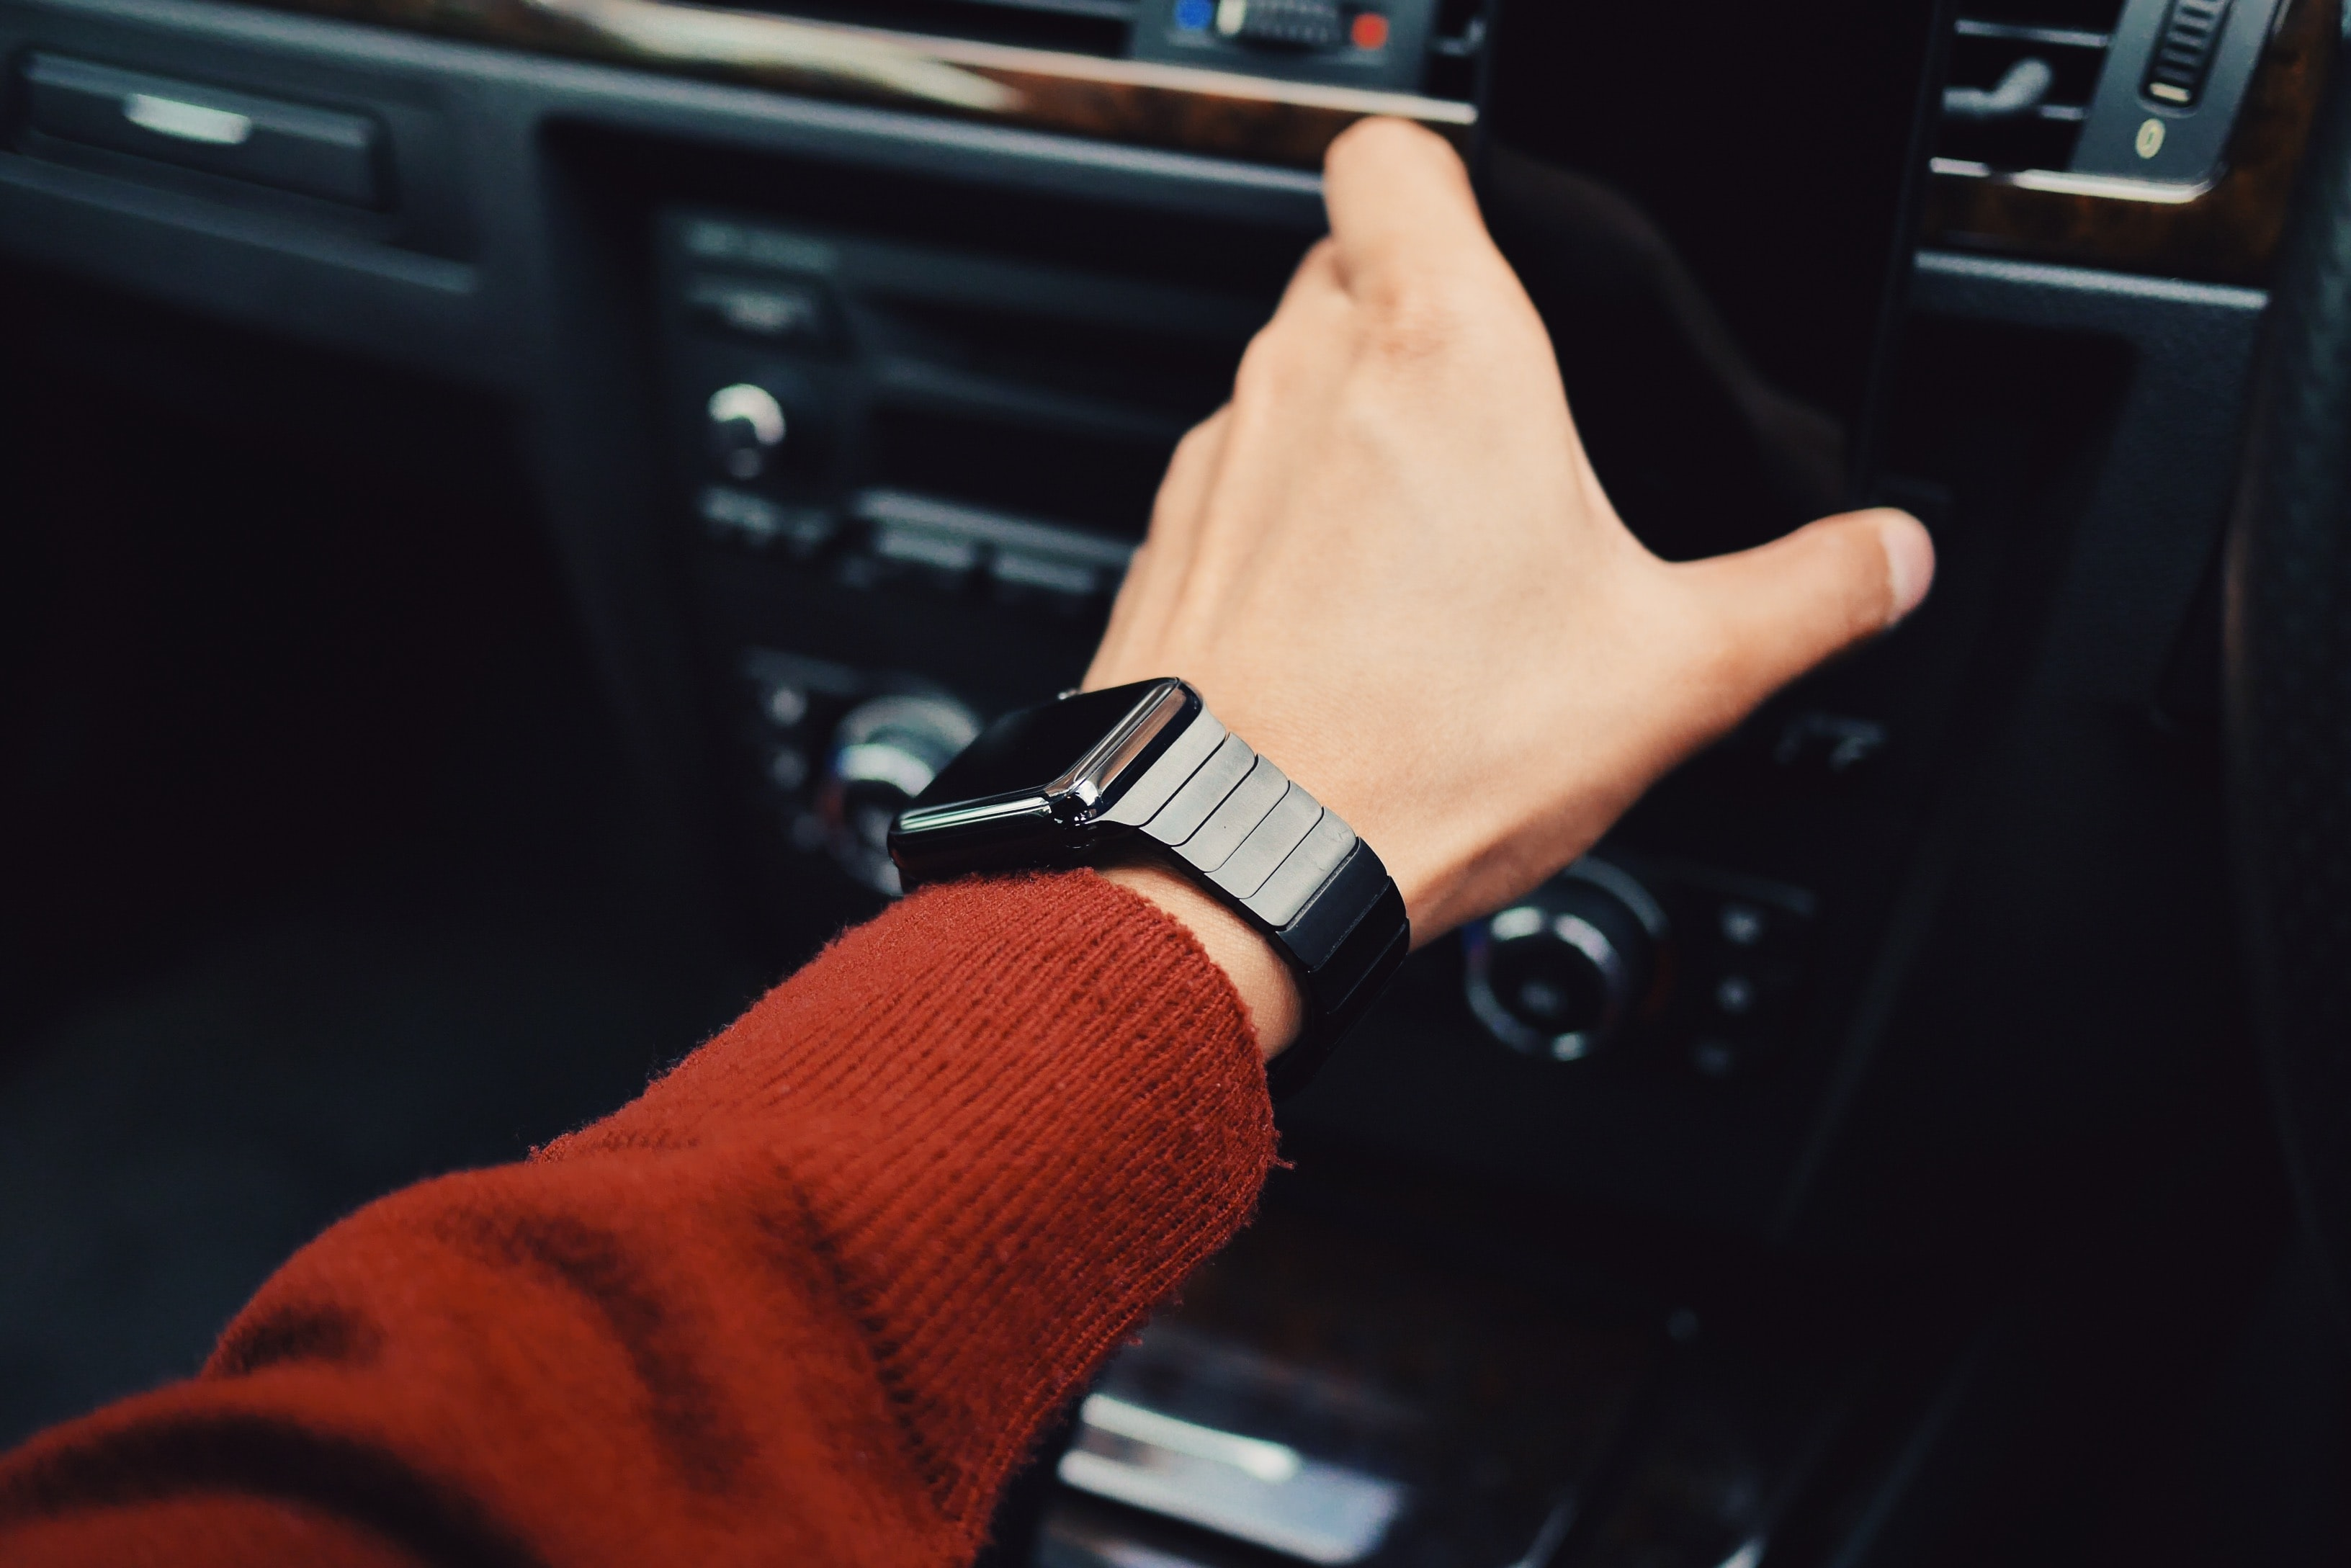 An outstretched hand of a person wearing a red sweater and an Apple Watch inside a car